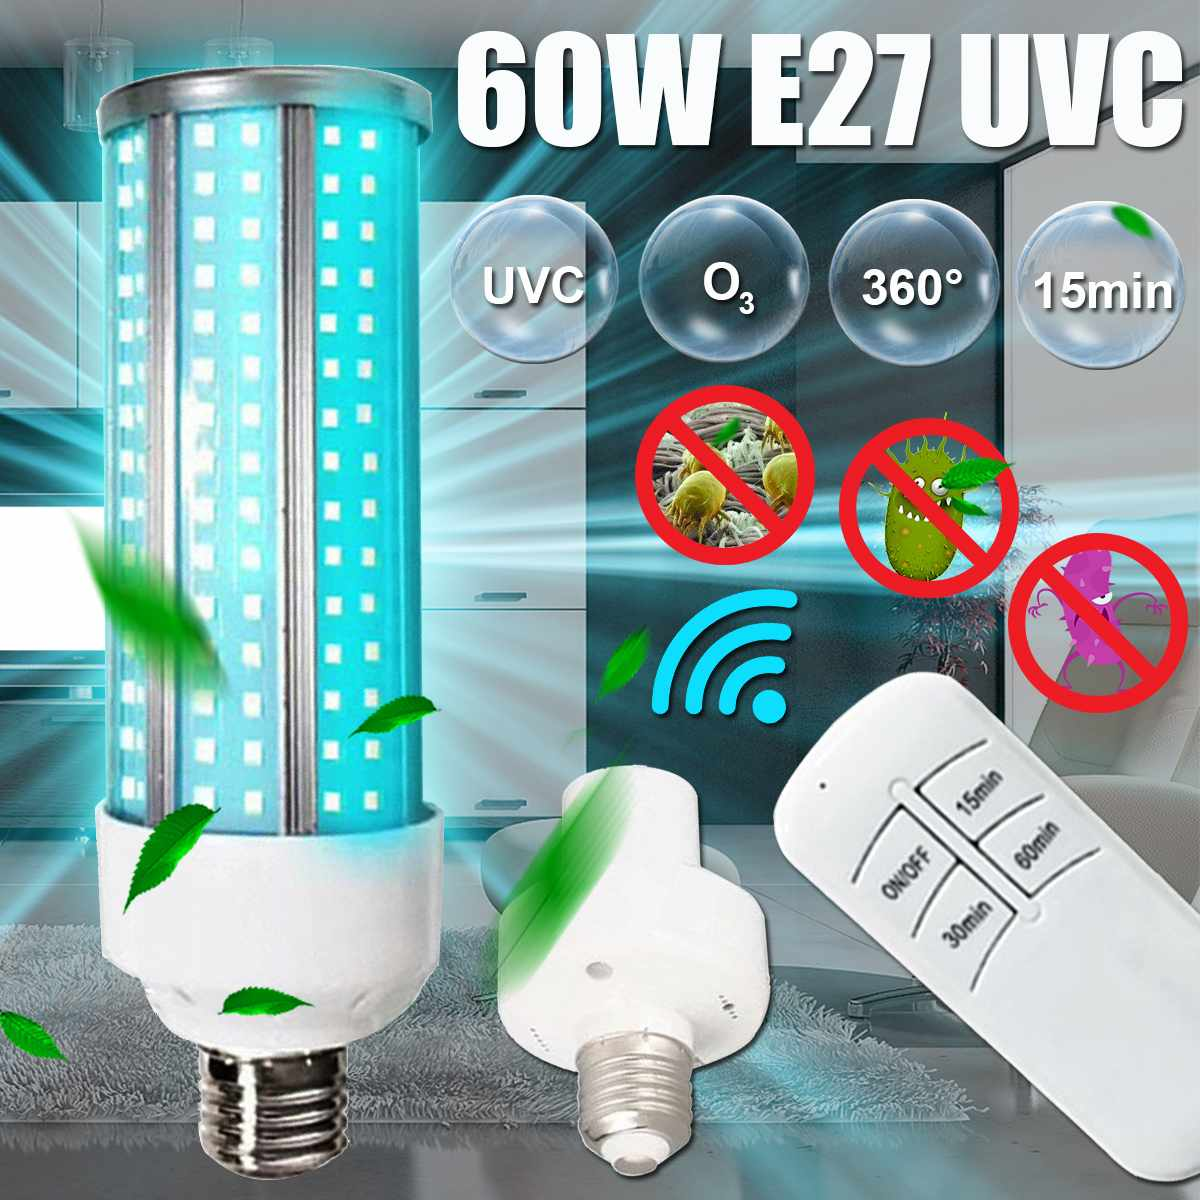 60W <font><b>E27</b></font> UVC Corn Light Sterilizer <font><b>UV</b></font> Ozone Germicidal Lamp with Timer Function Remote Control Ultraviolet Disinfection LED <font><b>Bulb</b></font> image